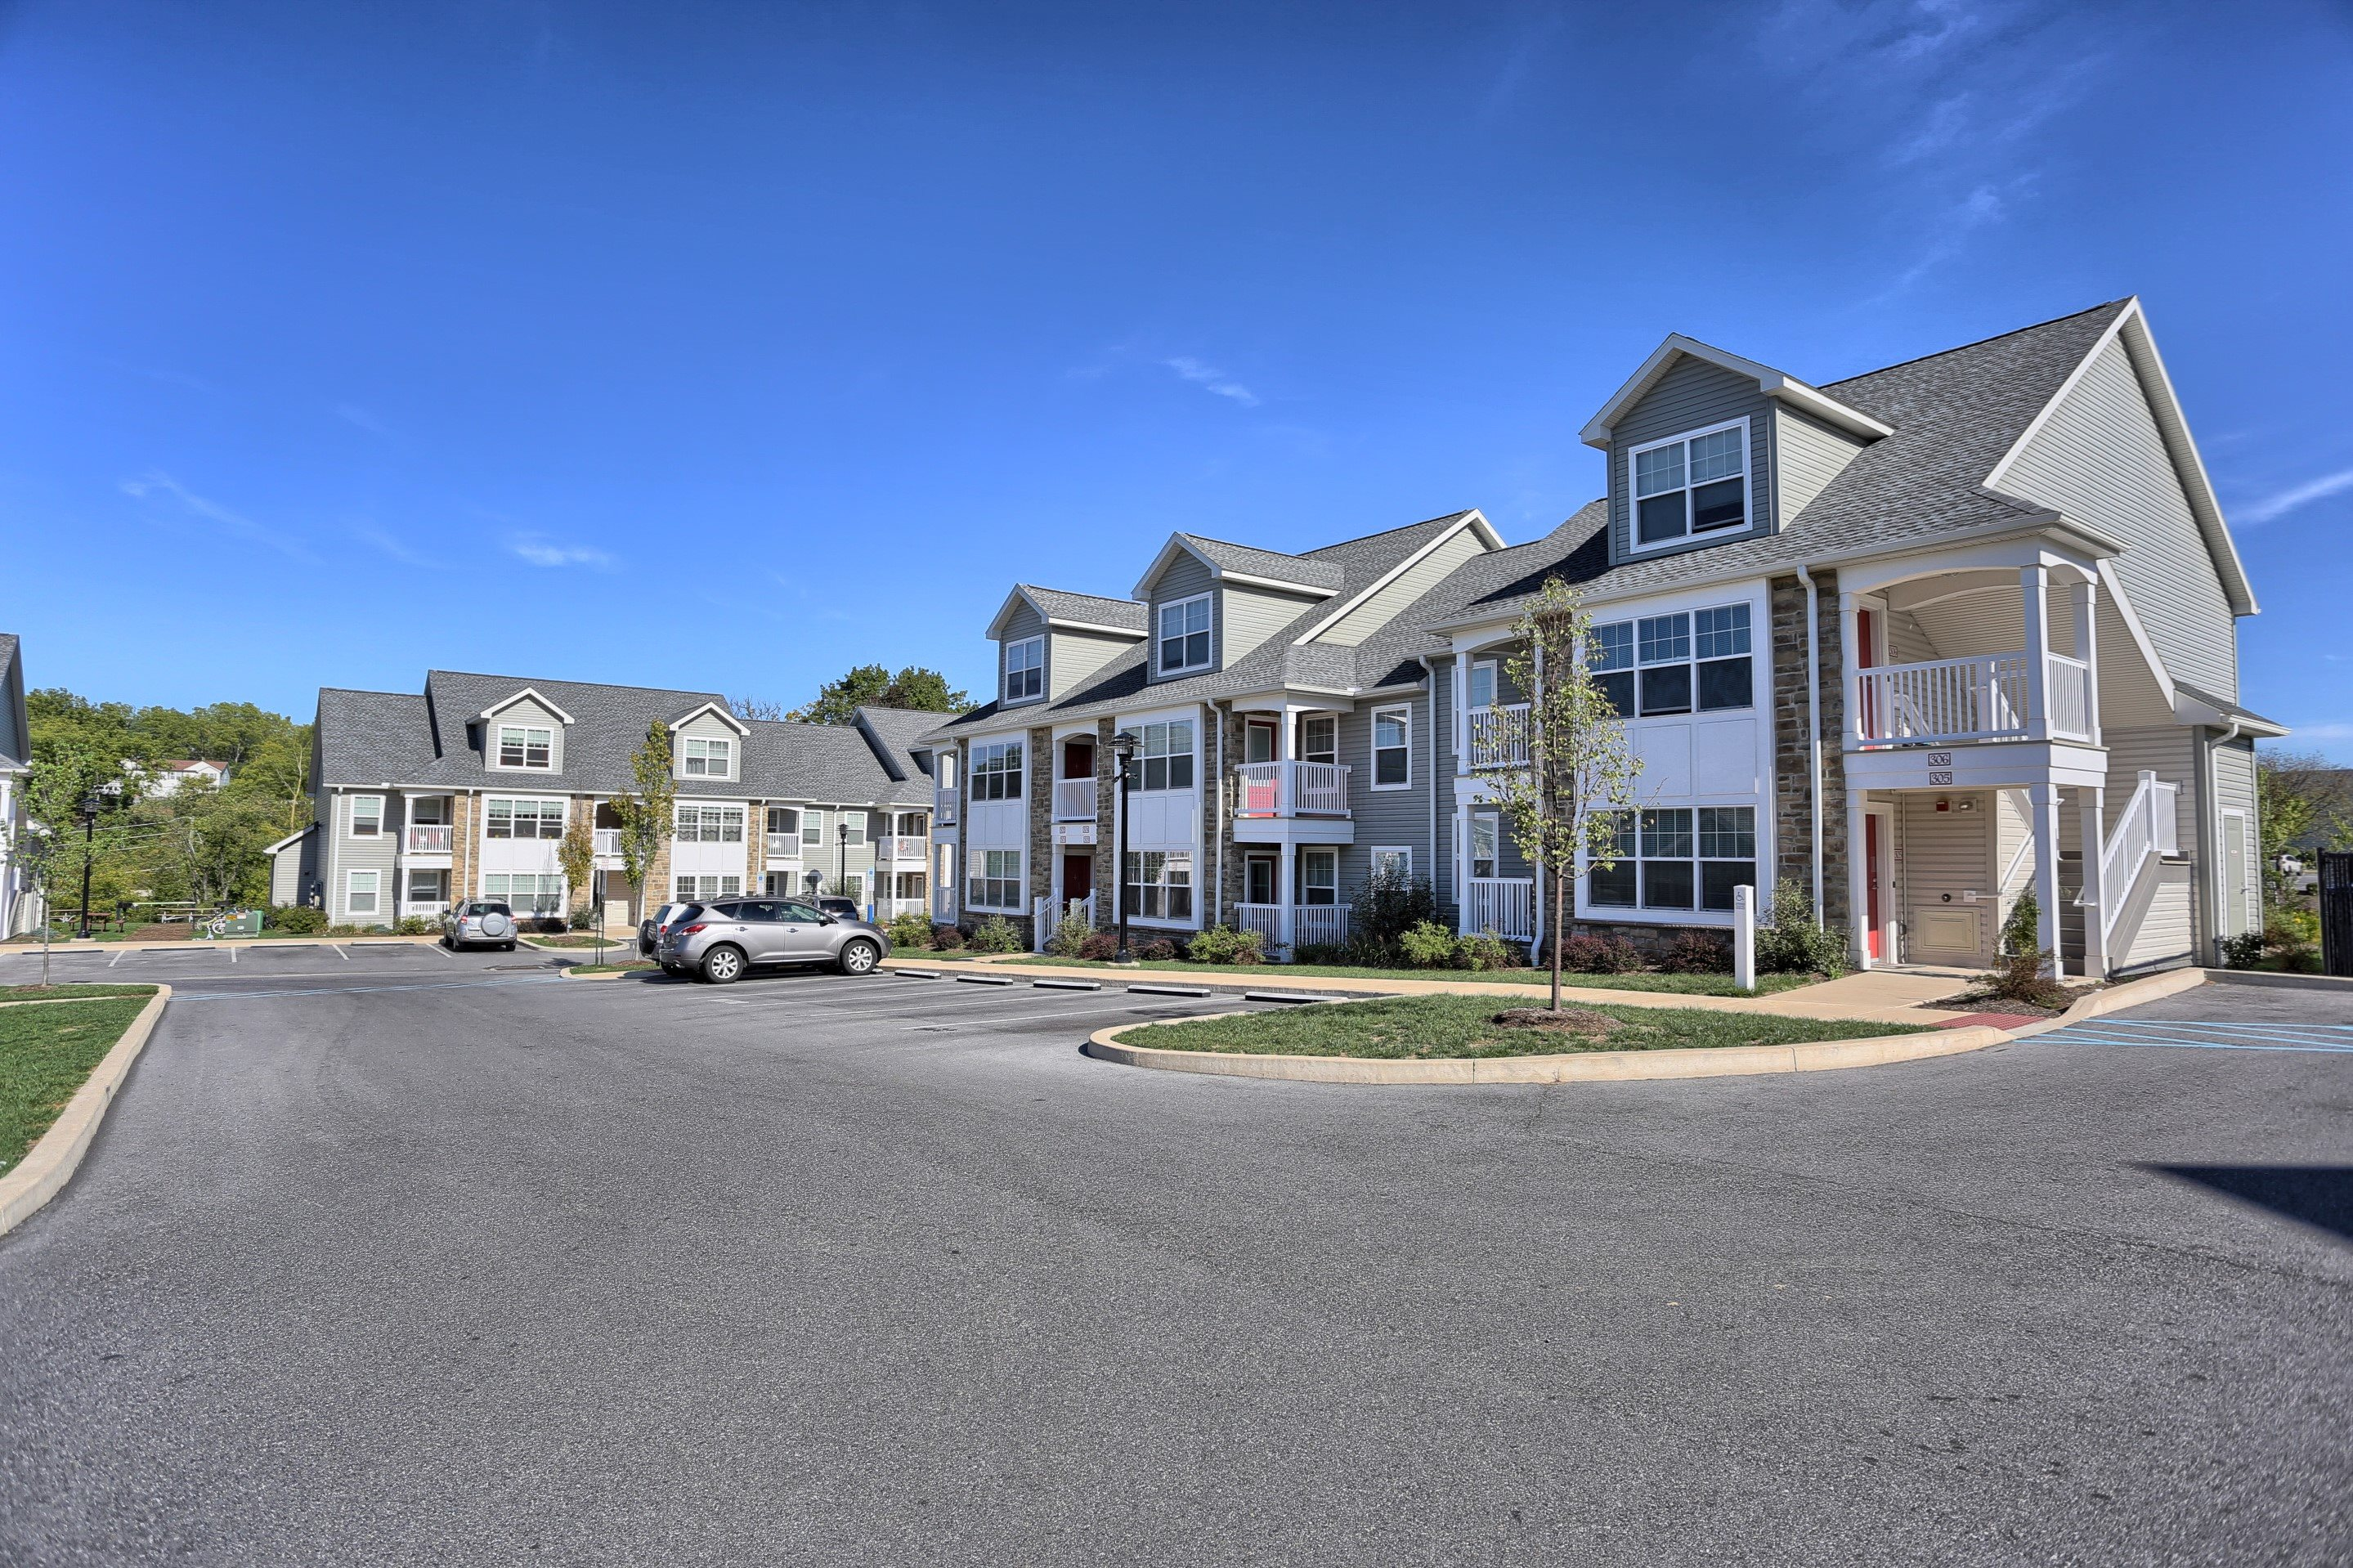 Image of Limerock Court Apartments in State College, Pennsylvania